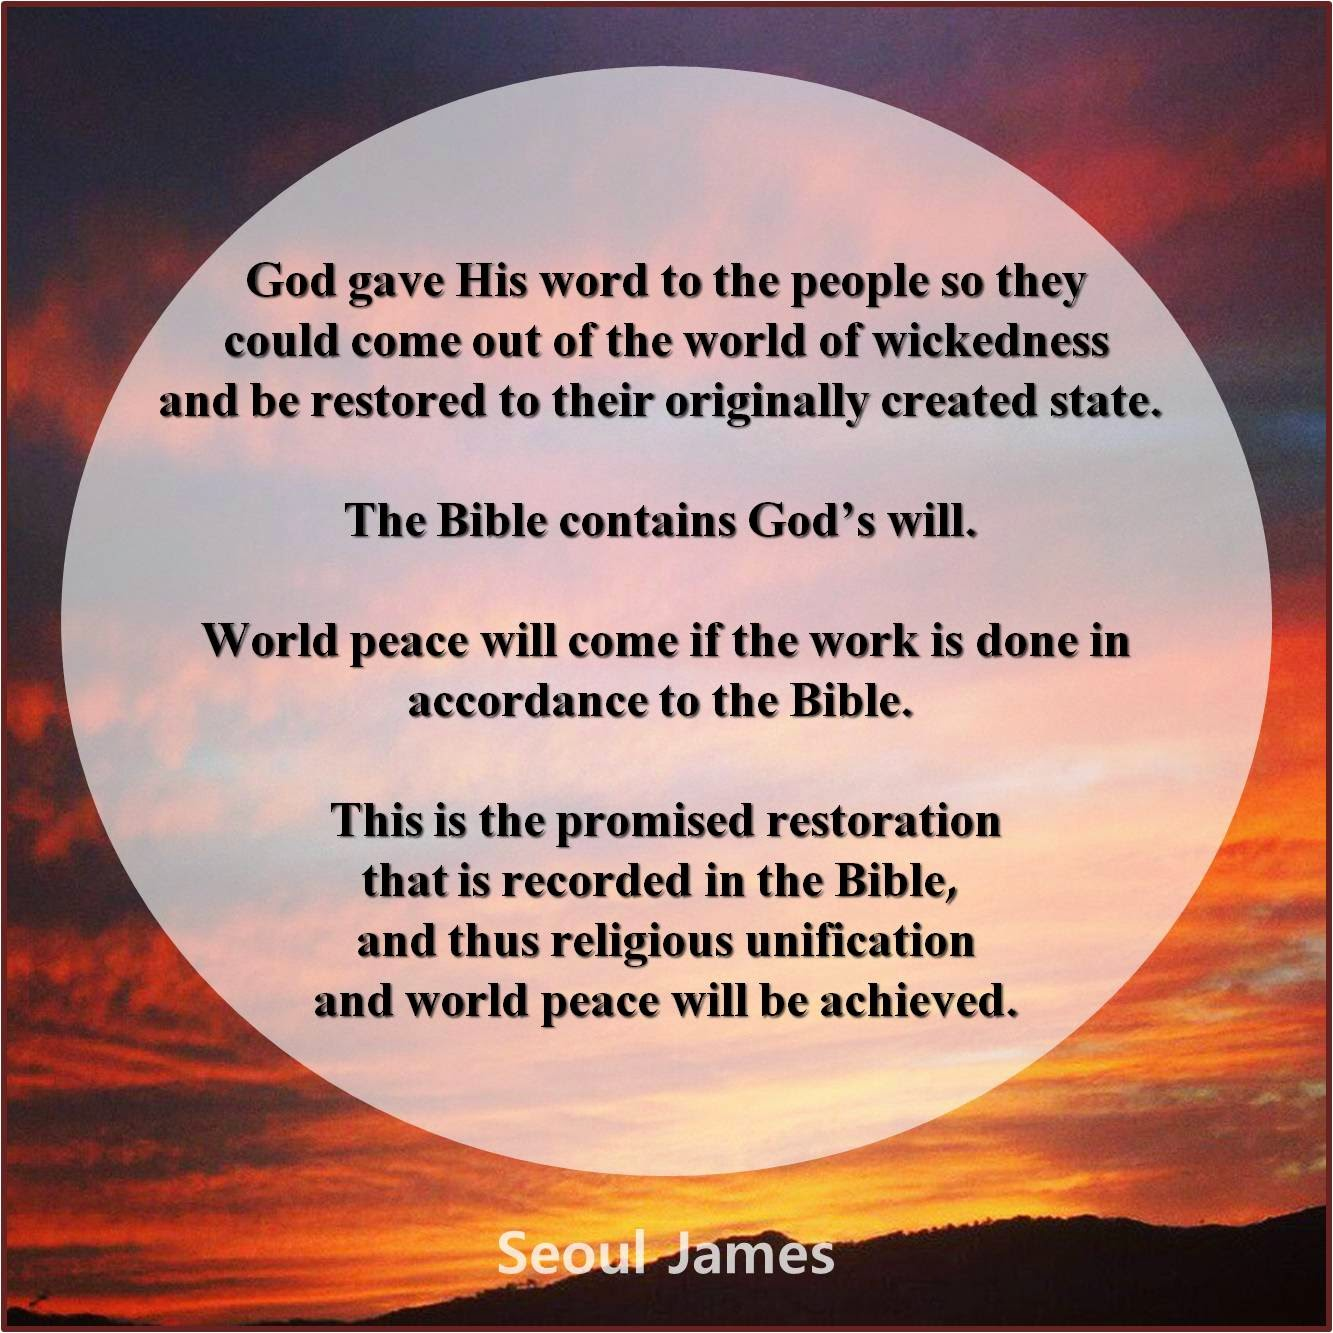 the true meaning of love from the bibles perspective The dynamics of true servanthood biblical perspectives from god's word see that when we have a true biblical perspective of what true servanthood is we.